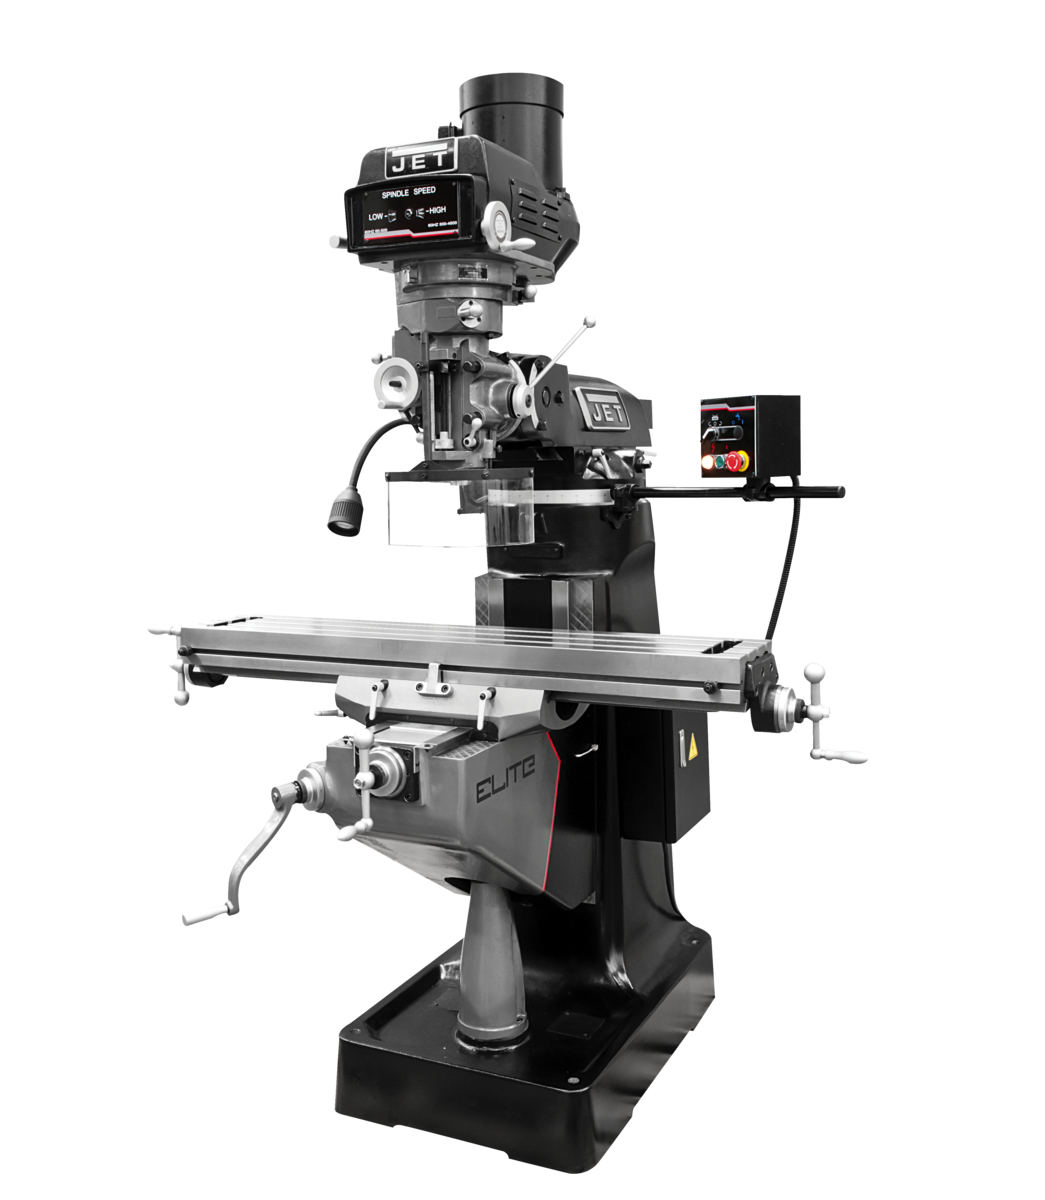 ETM-949 Mill with 3-Axis ACU-RITE 303 (Knee) DRO and Servo X, Y-Axis Powerfeeds and USA Air Powered Draw Bar